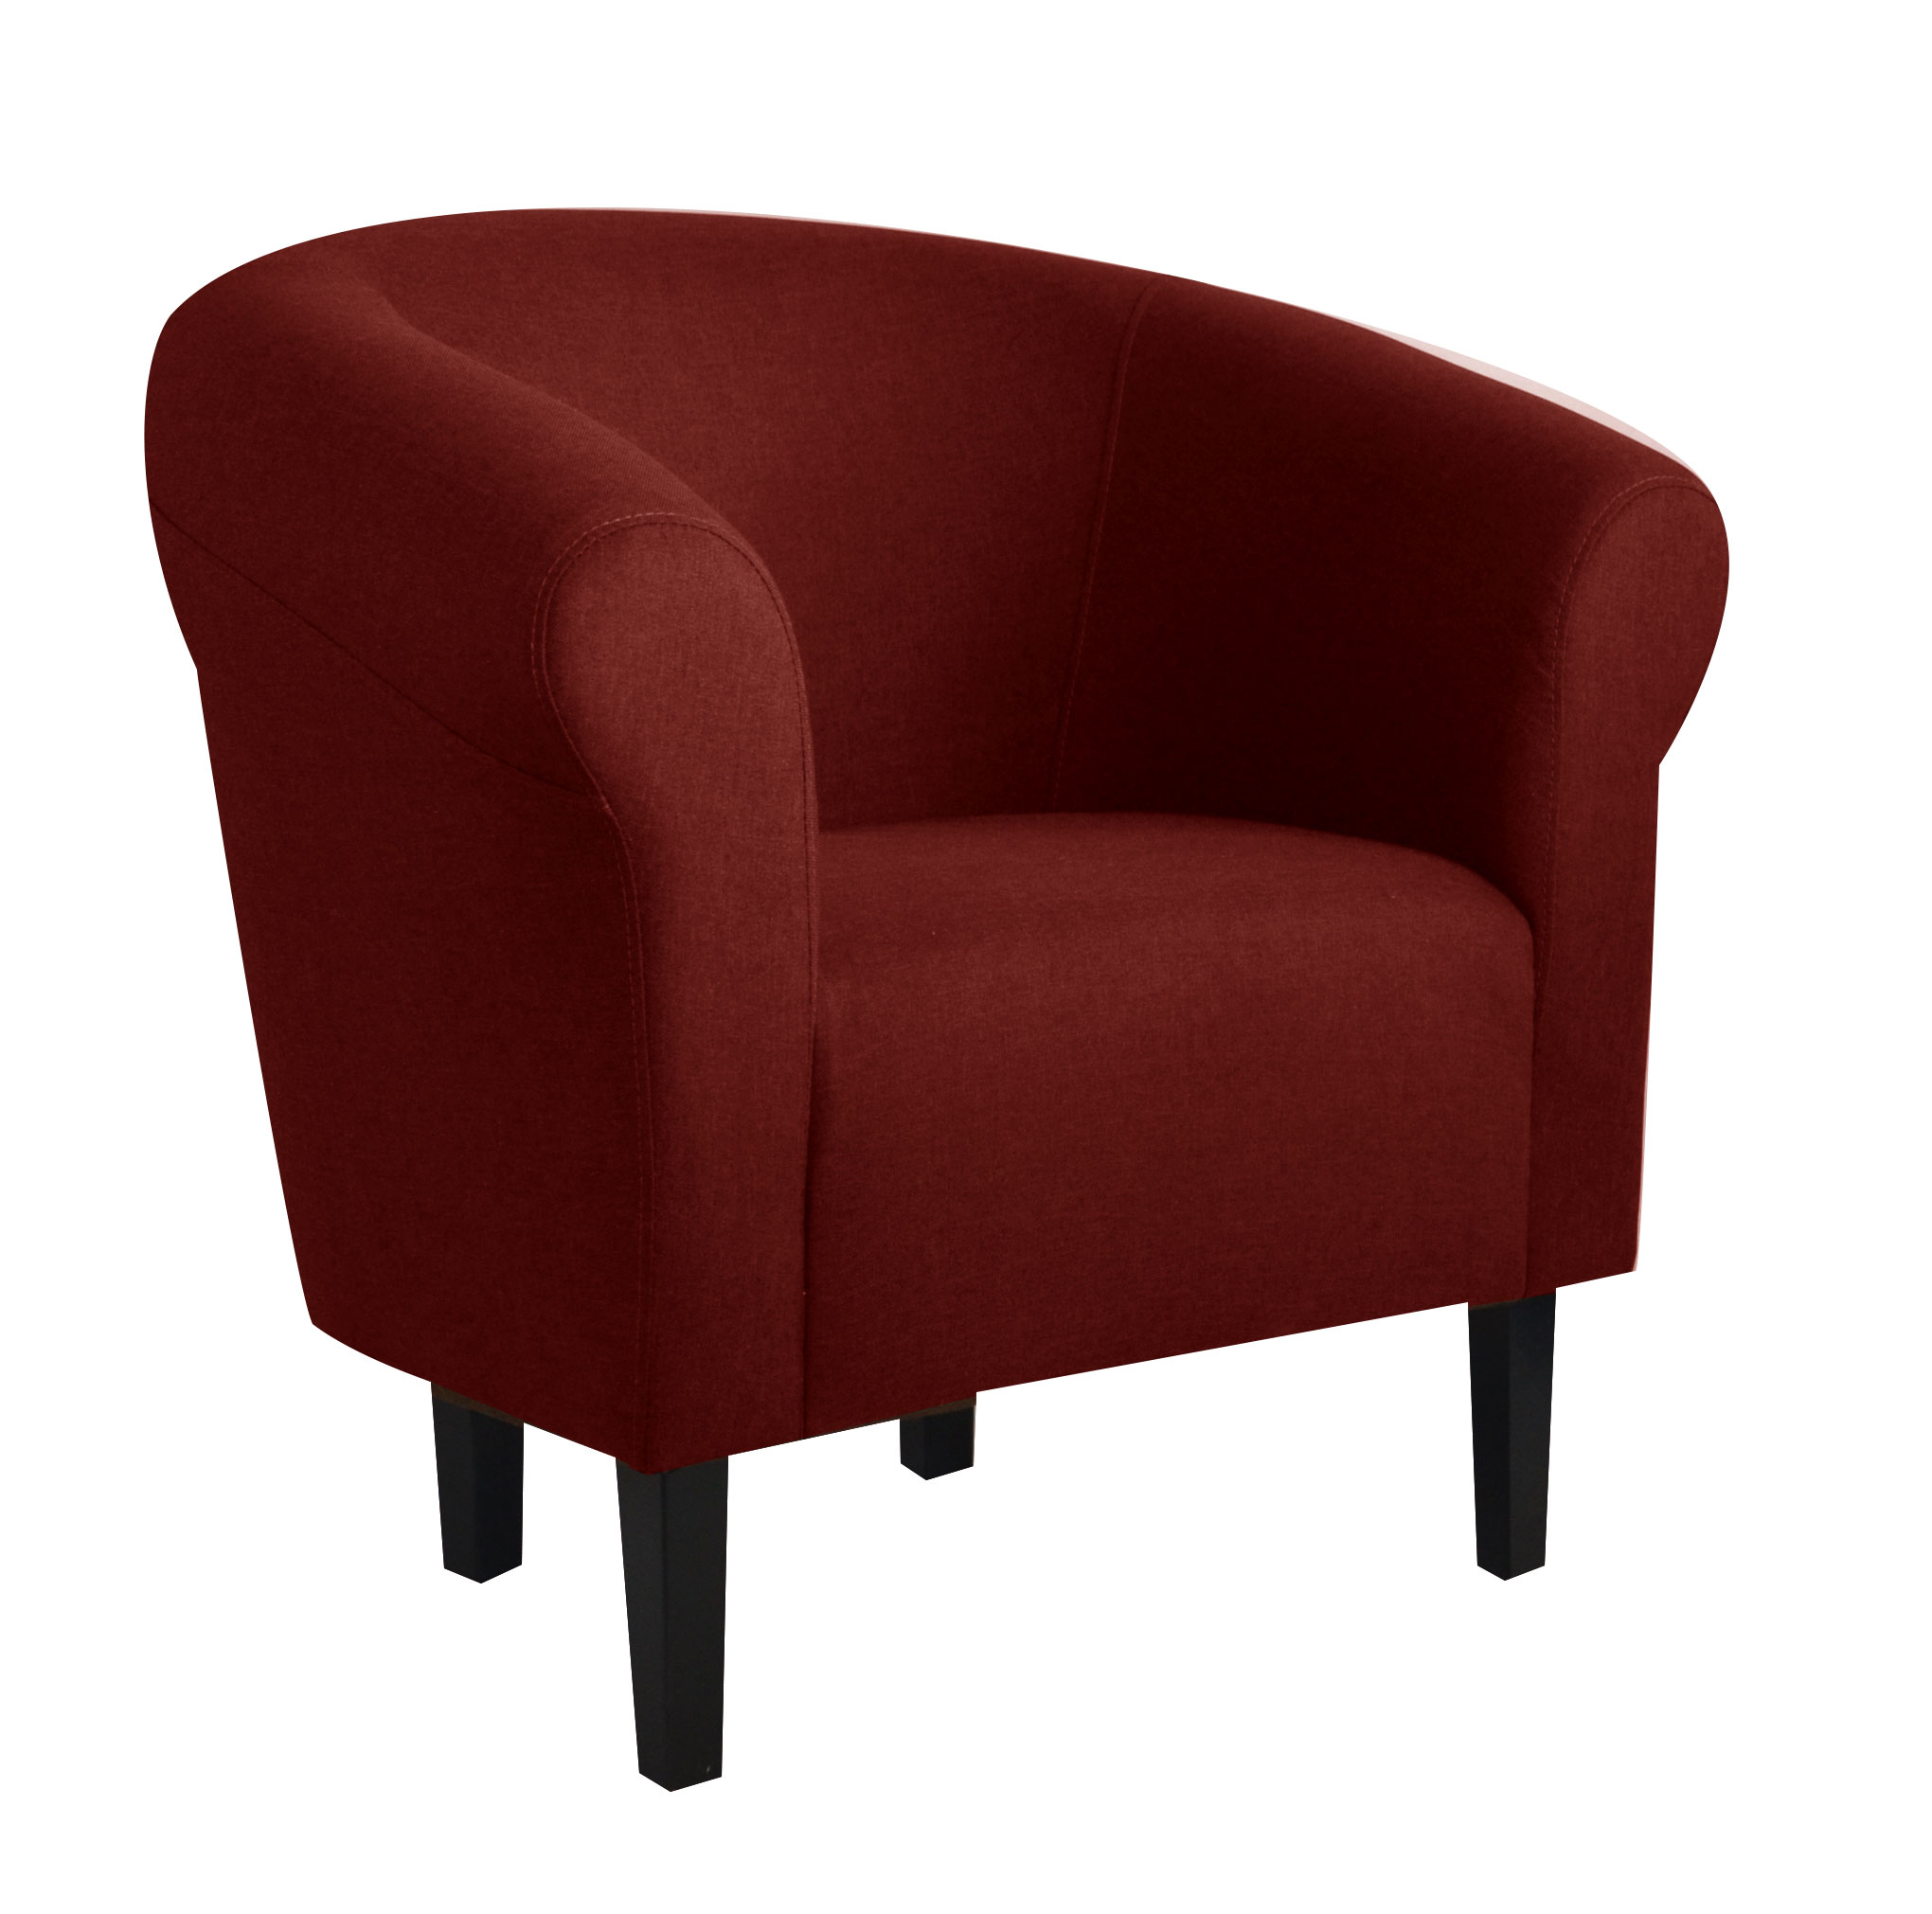 fauteuil crapaud monaco savane pour le salon les caf s ebay. Black Bedroom Furniture Sets. Home Design Ideas